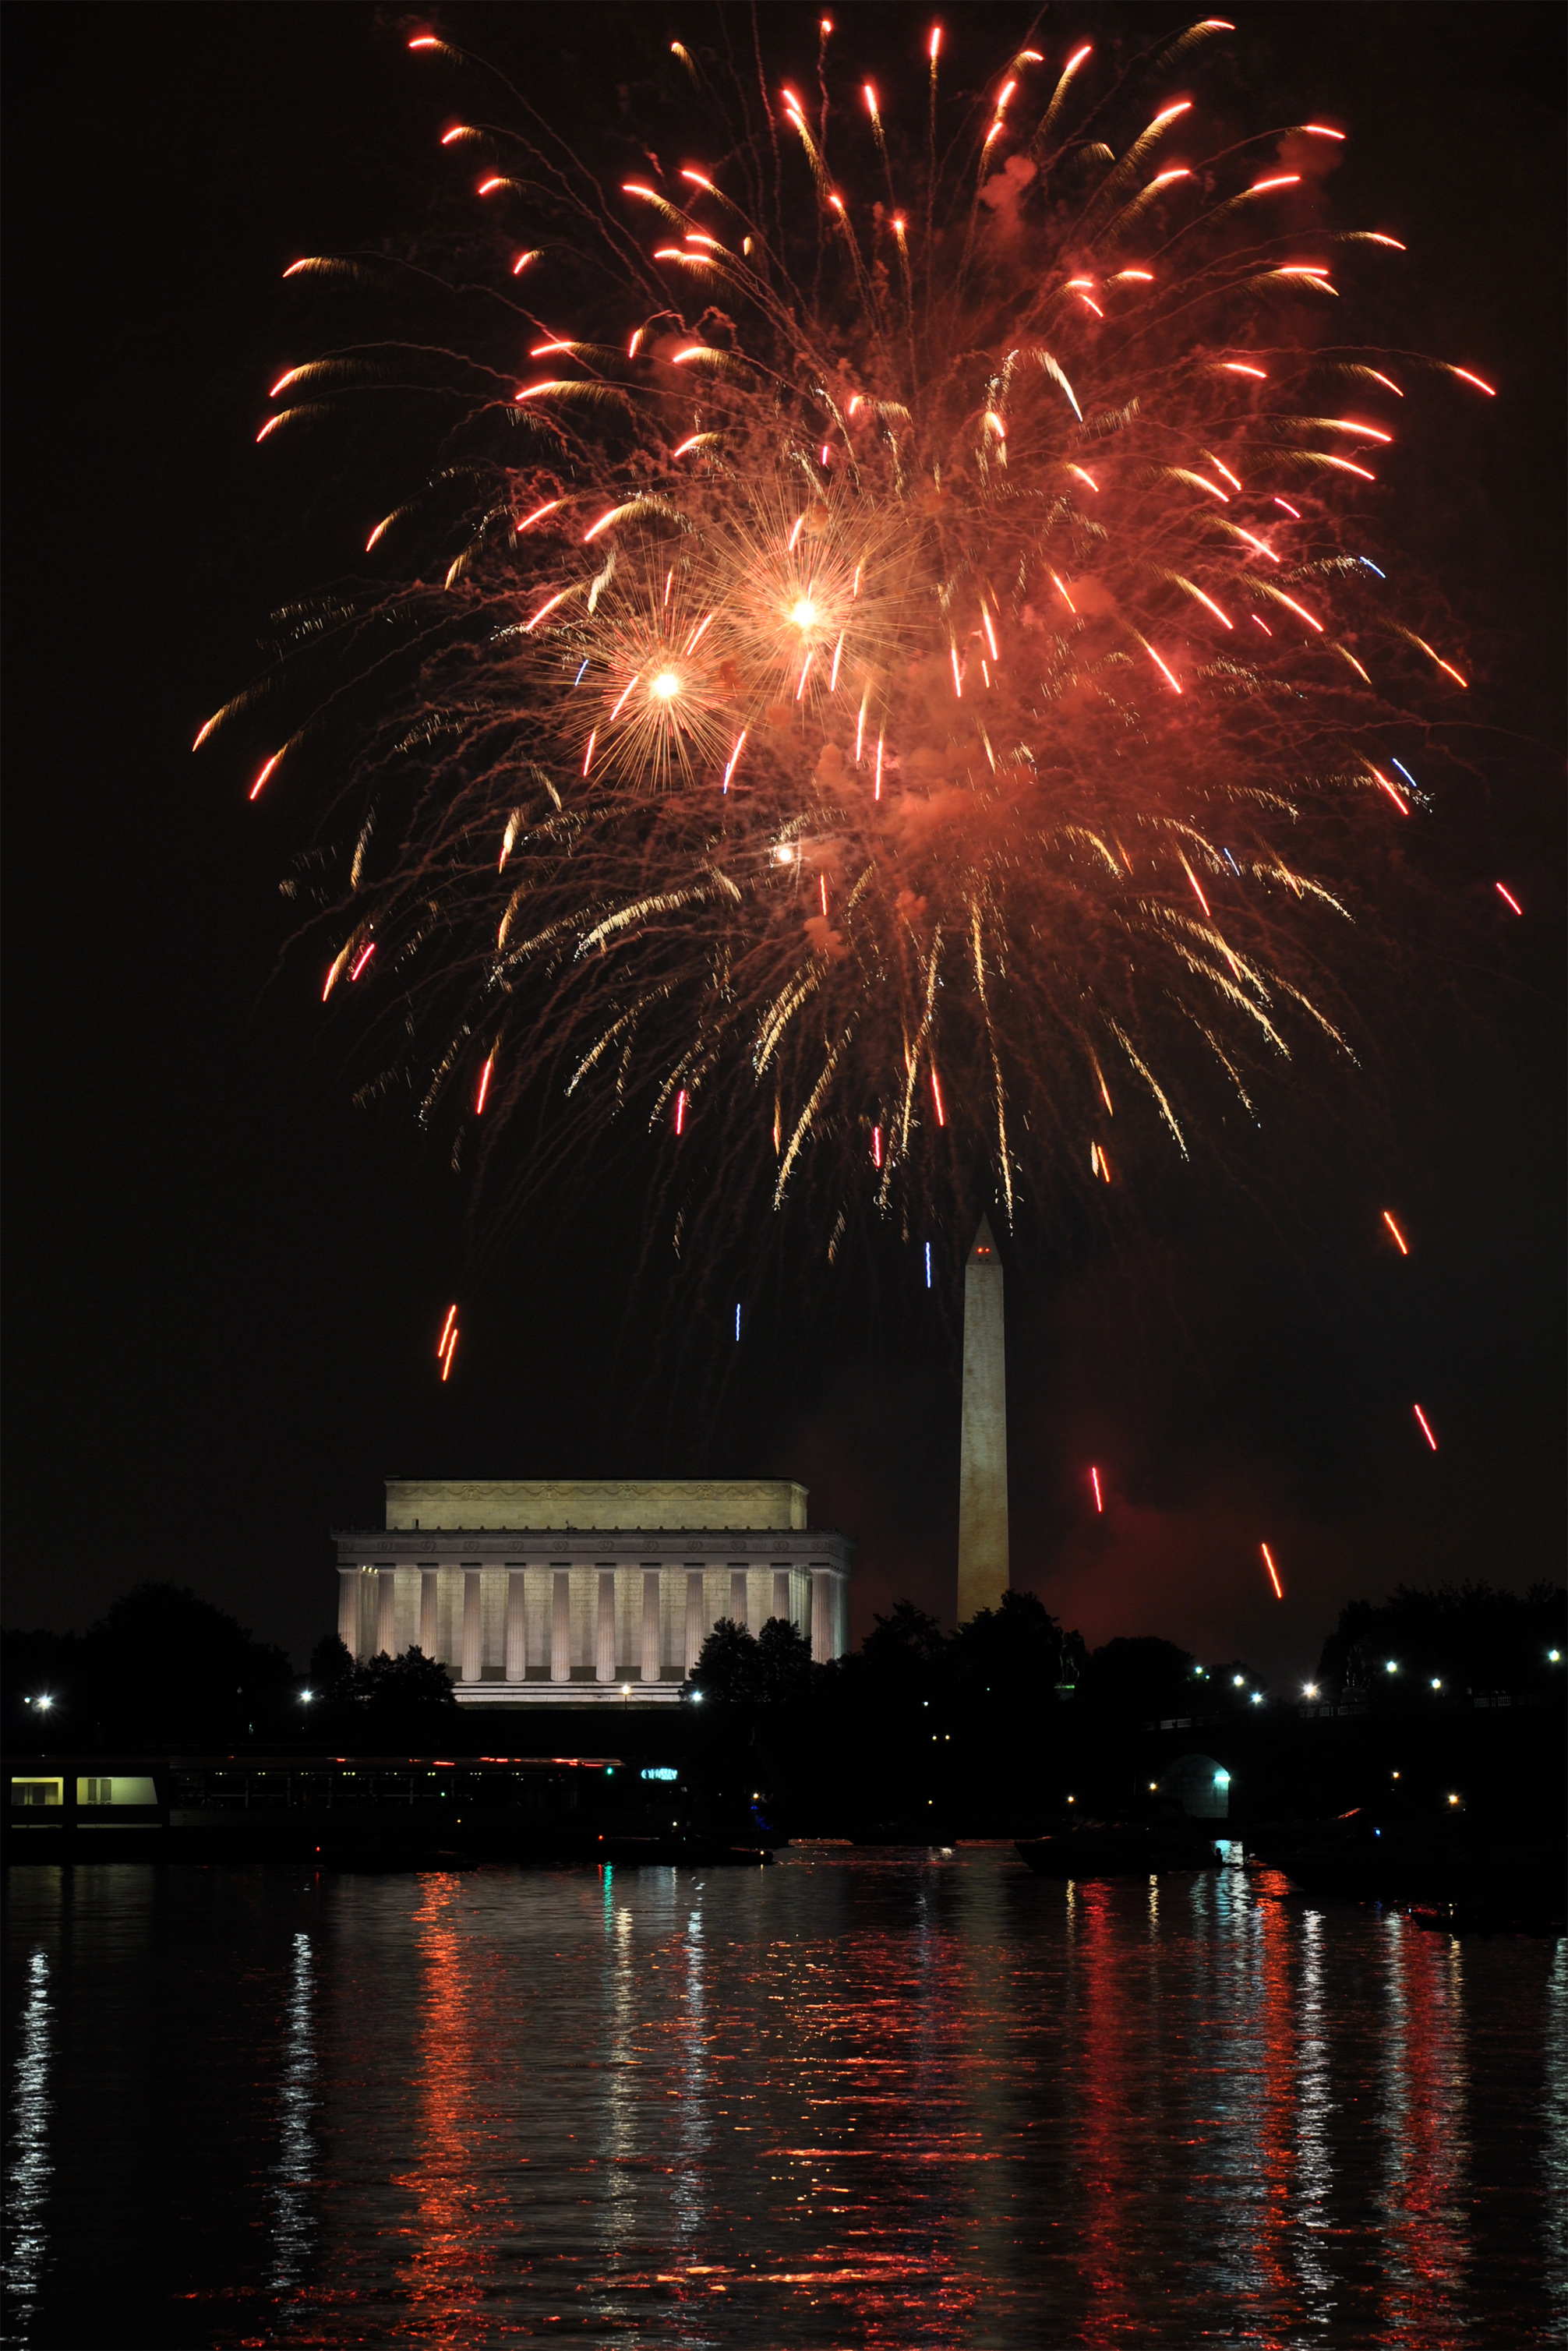 Fireworks over the Lincoln Memorial and Washington Monument